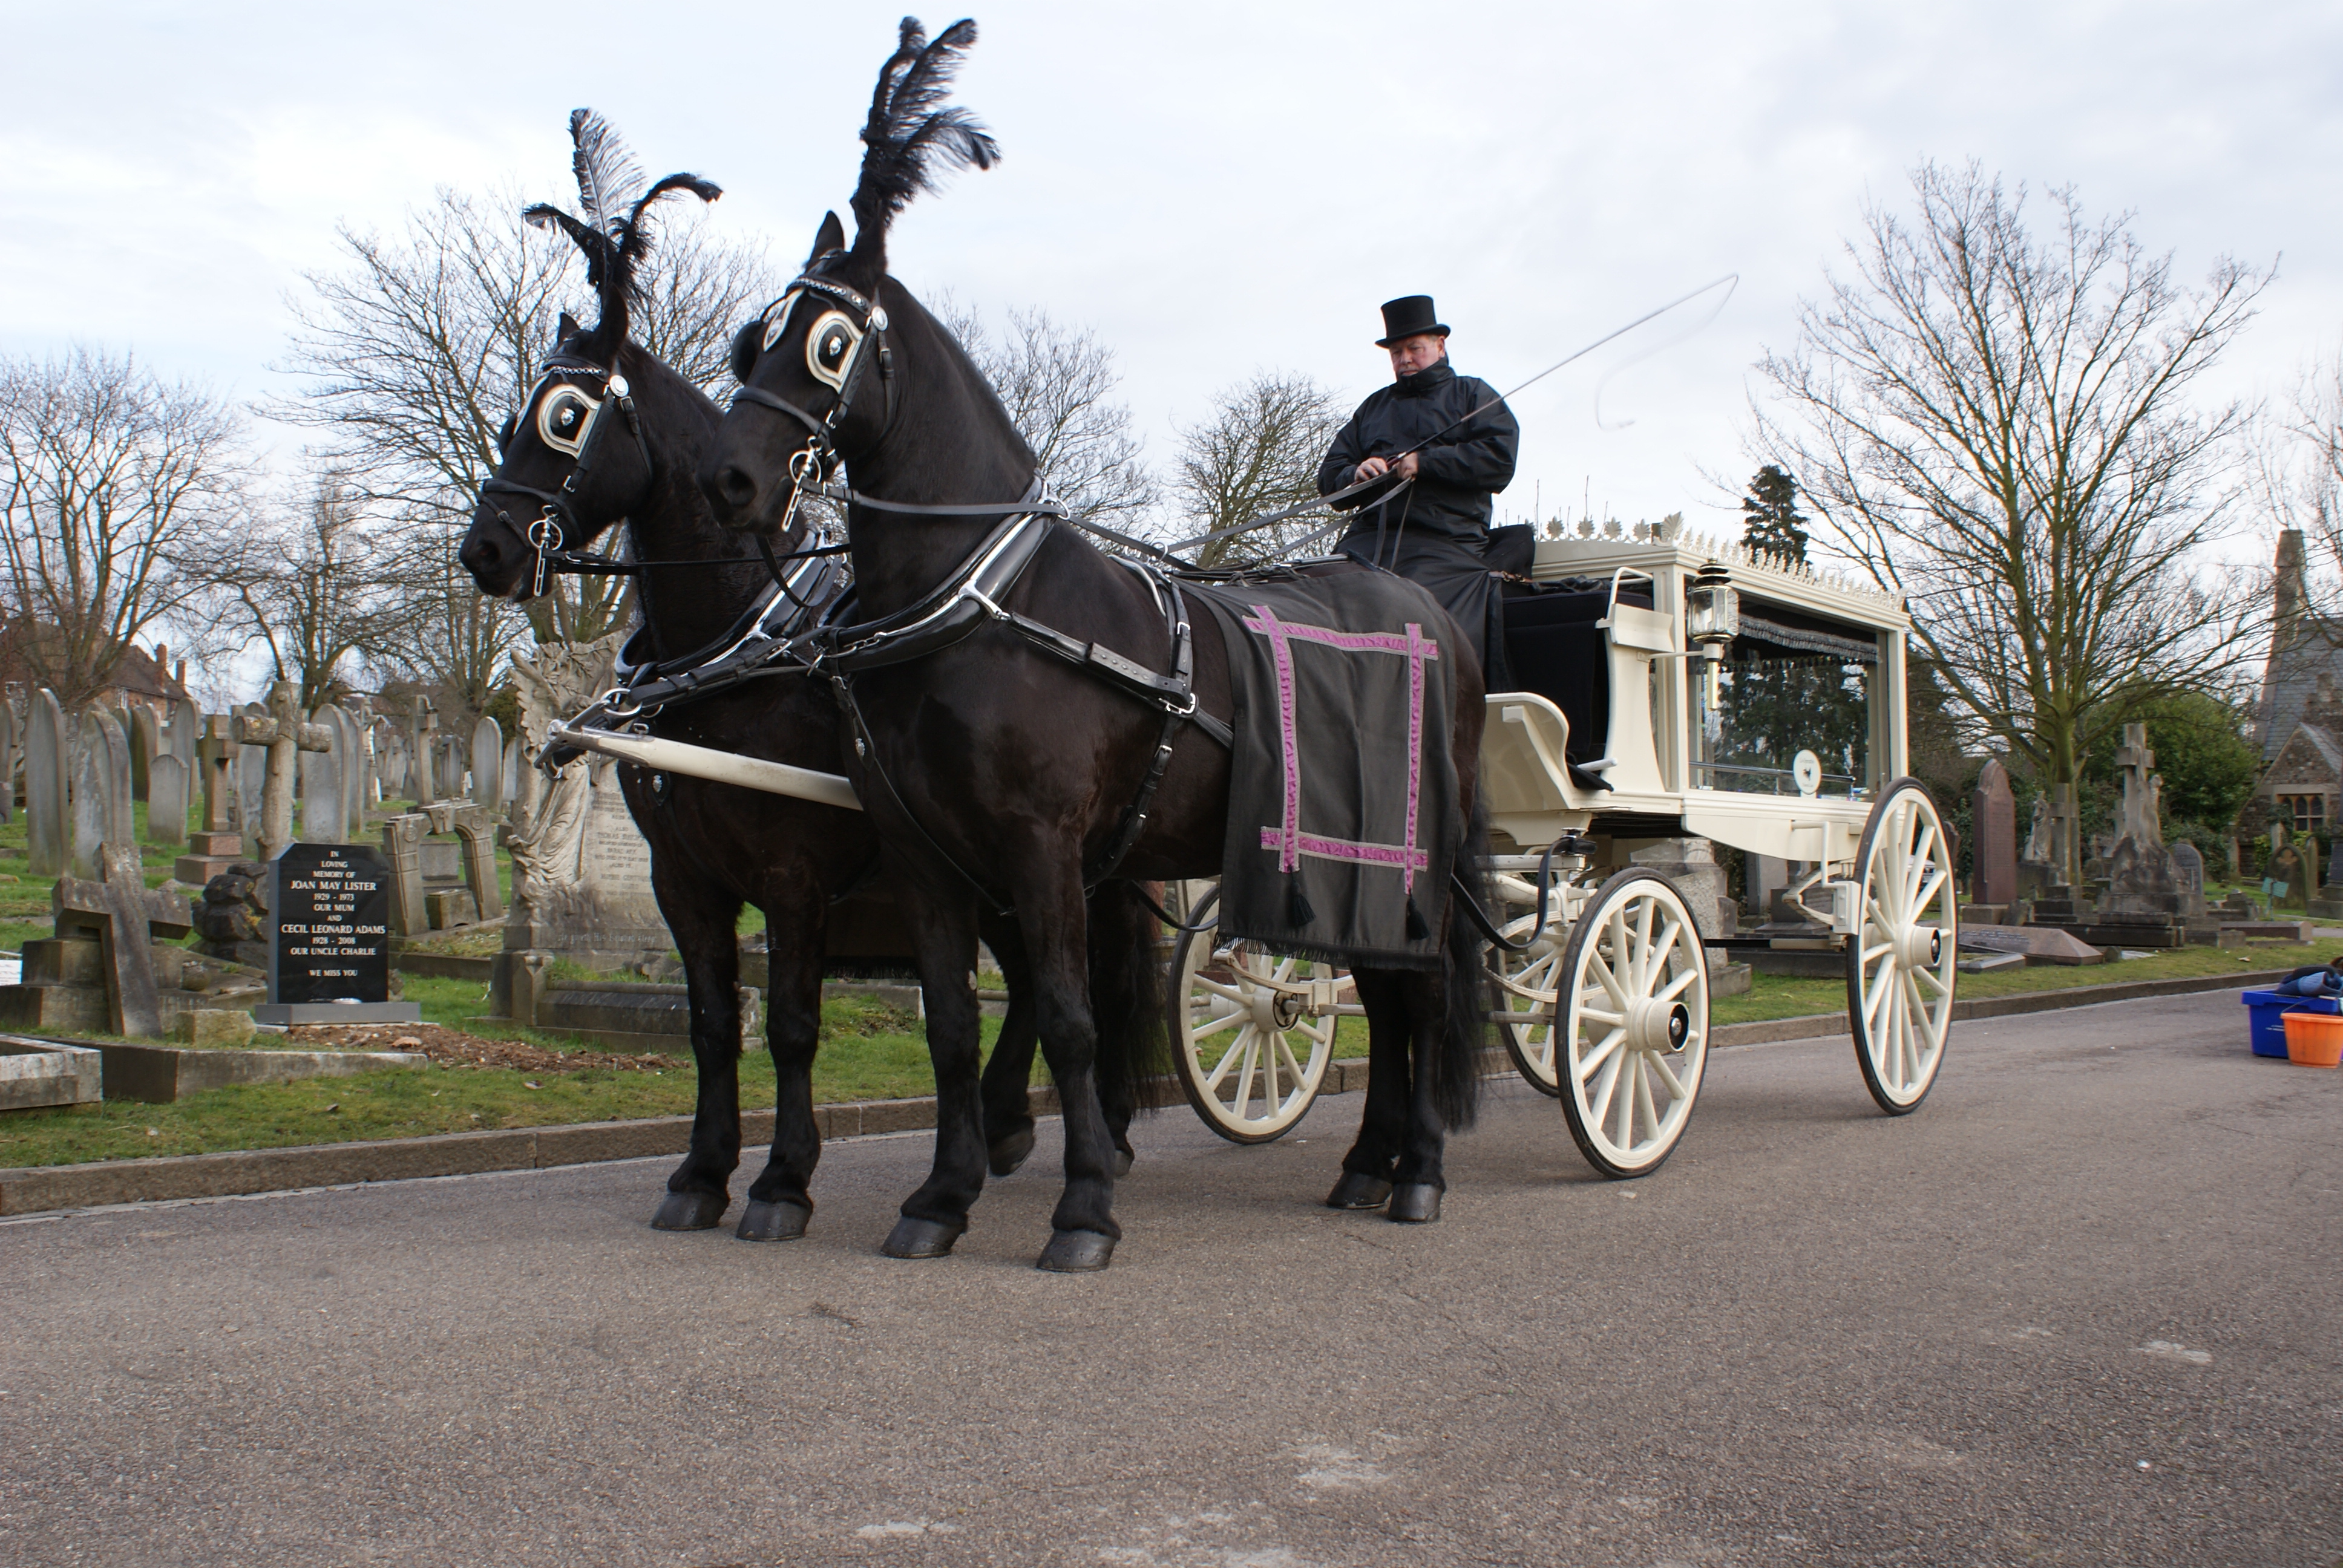 Drawn trolley friesian horse Call Hire about us /